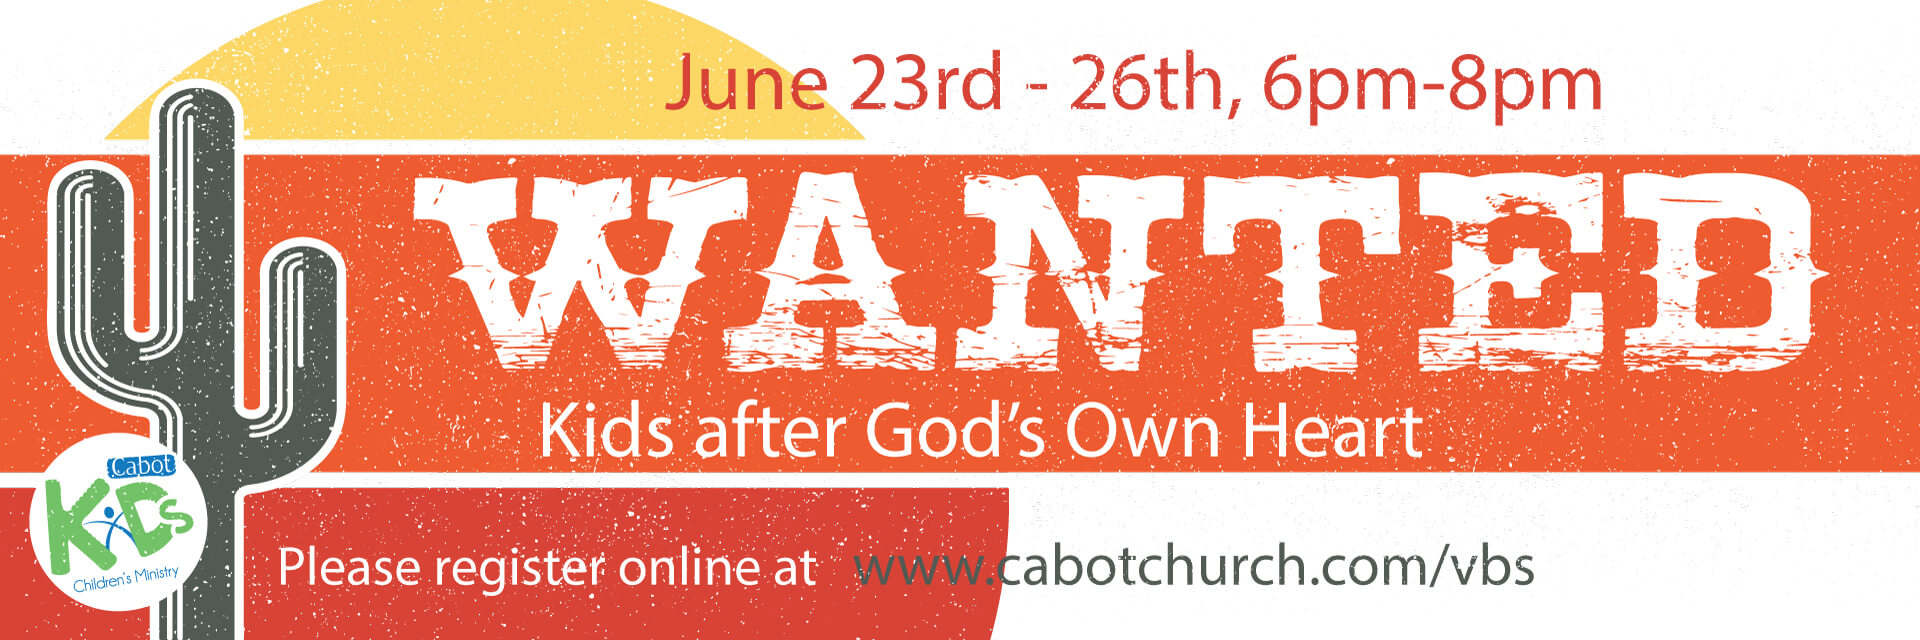 Cabot Church of Christ Vacation Bible School | June 23rd-26th 6pm-8pm Click Here for more information